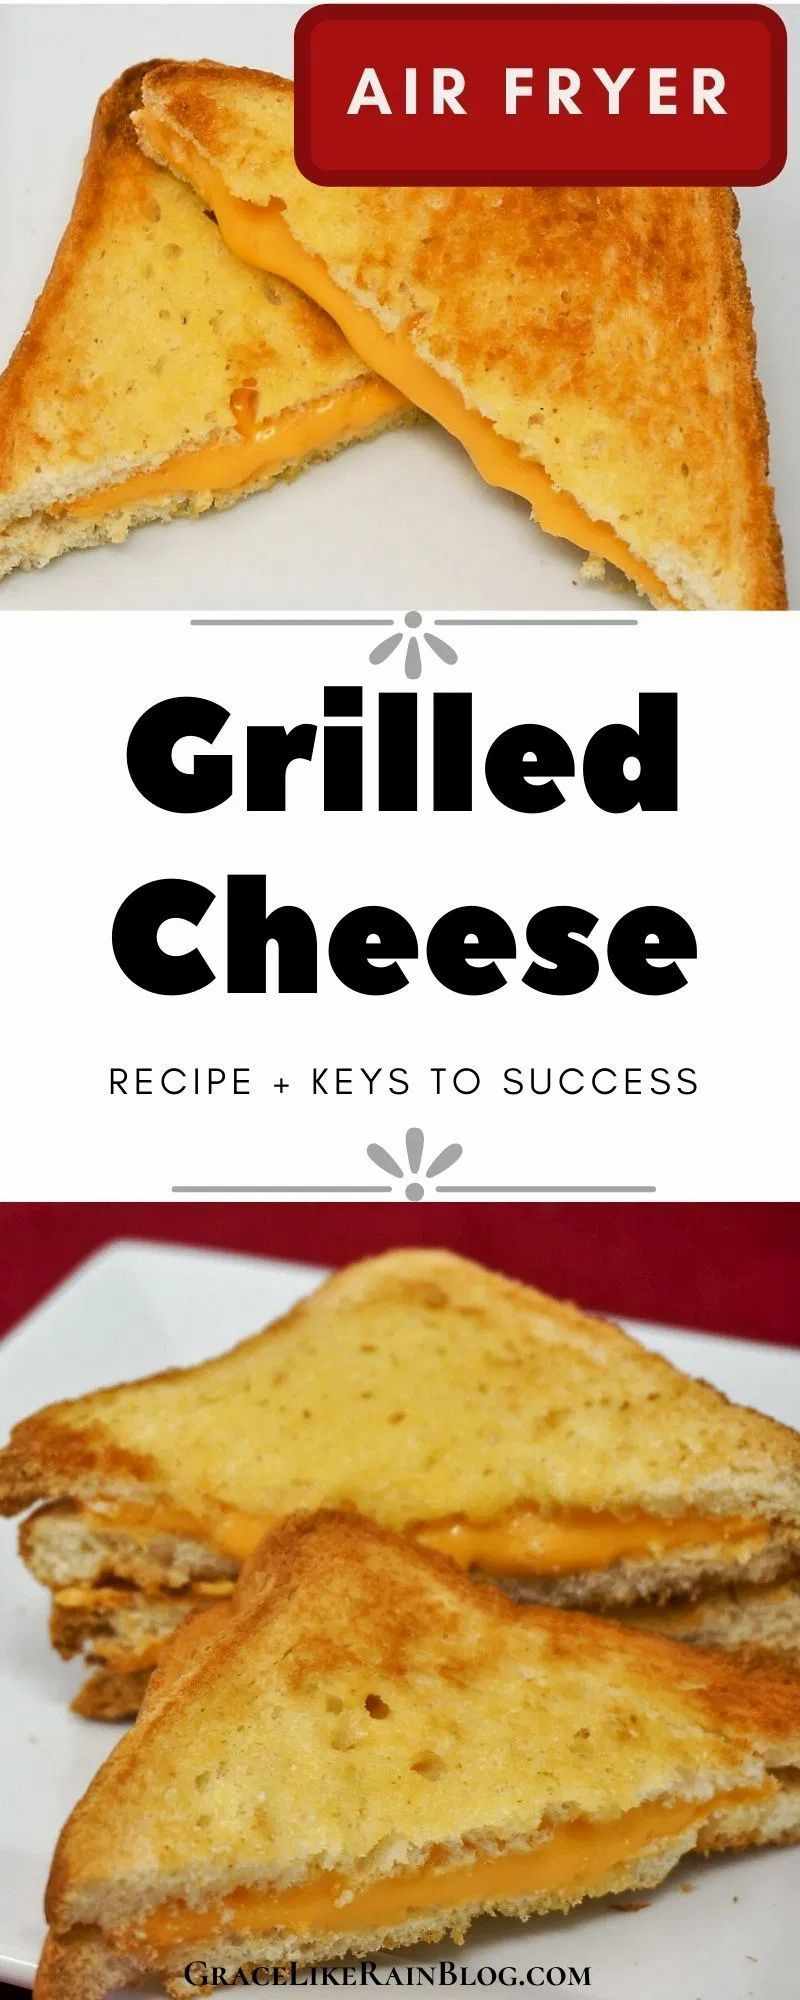 Air Fryer Grilled Cheese Sandwiches Recipe in 2020